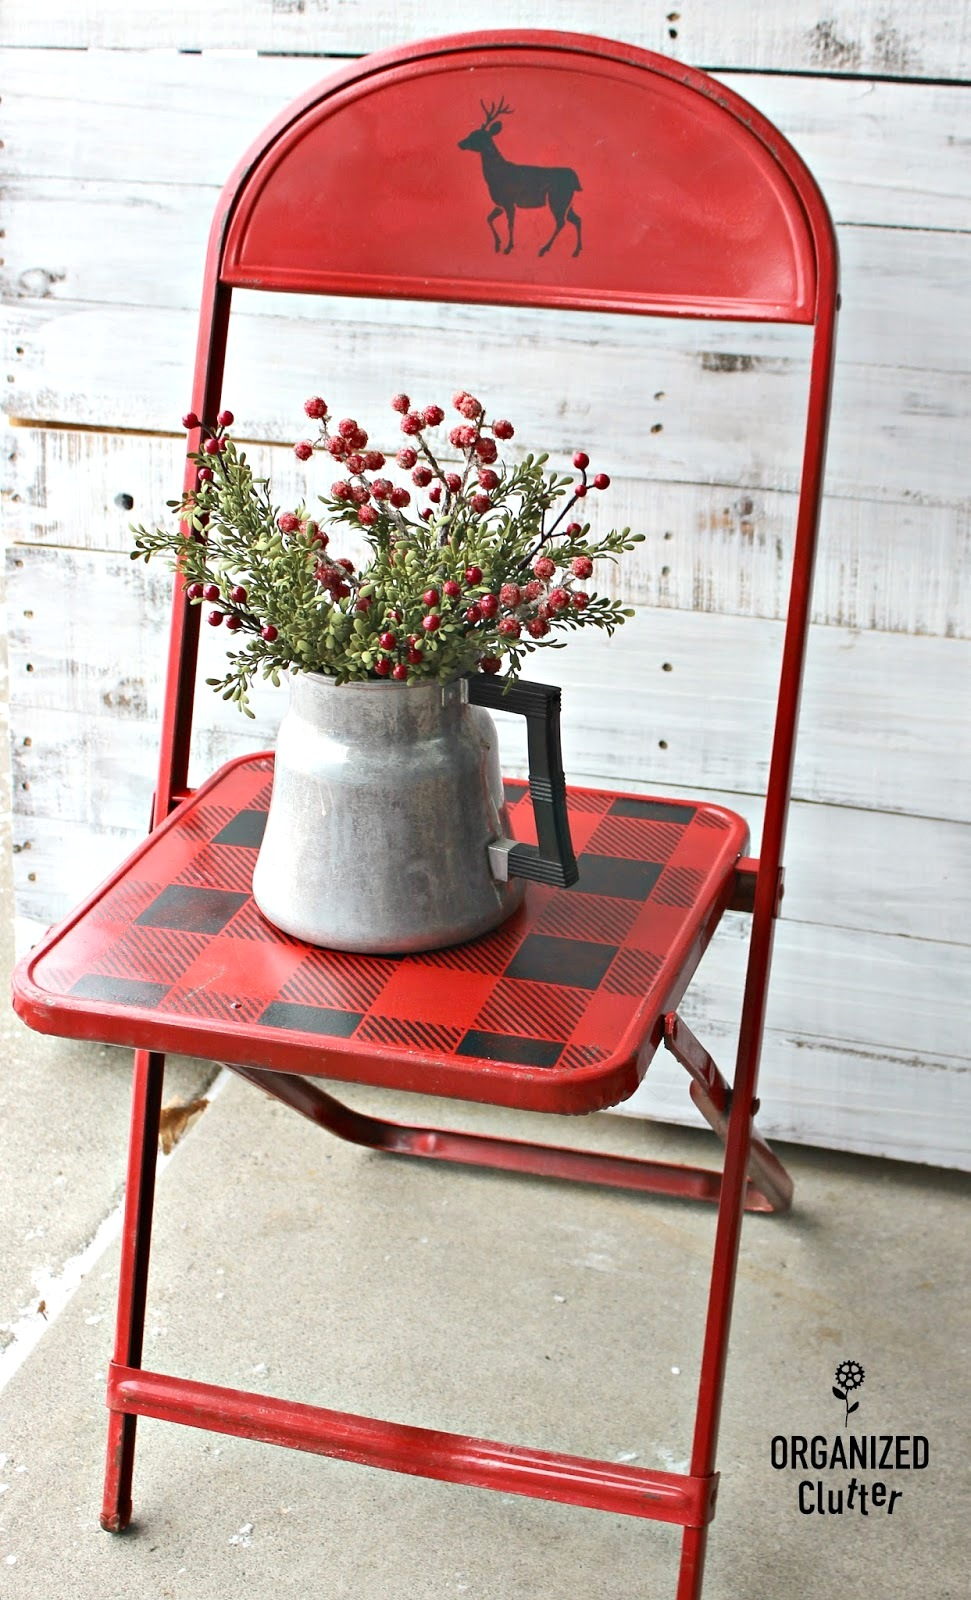 Buffalo Checked red metal folding chair with Christmas theme by Organized Clutter, featured on Funky Junk Interiors